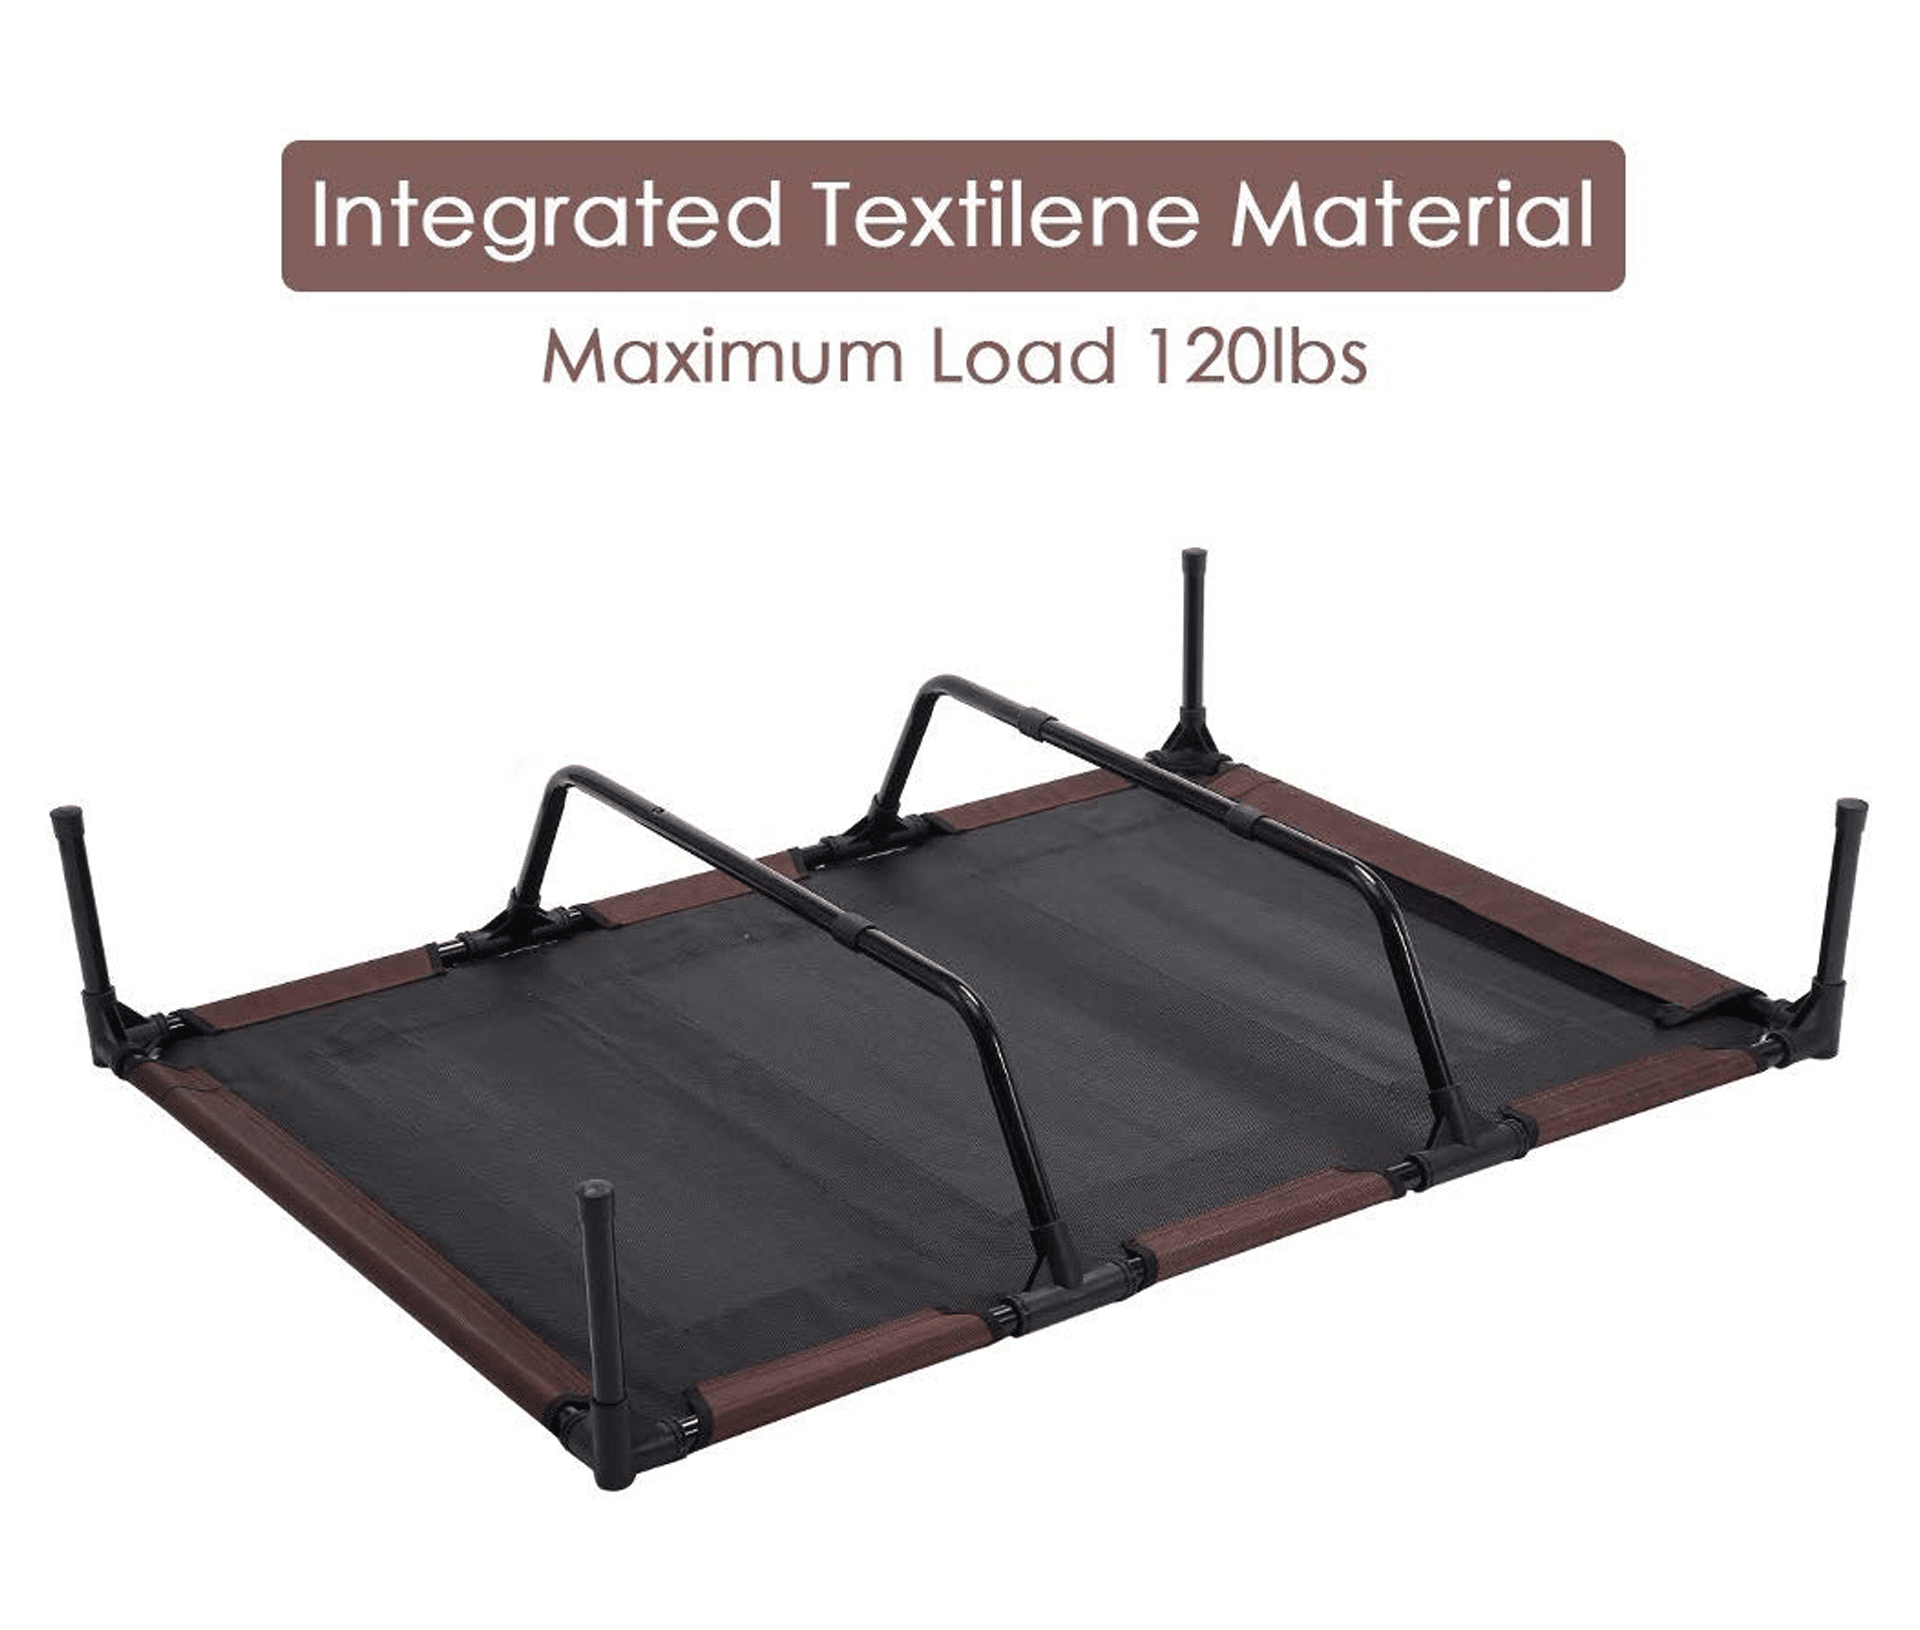 SUPERJARE Outdoor Dog Bed, Elevated Pet Cot with Canopy